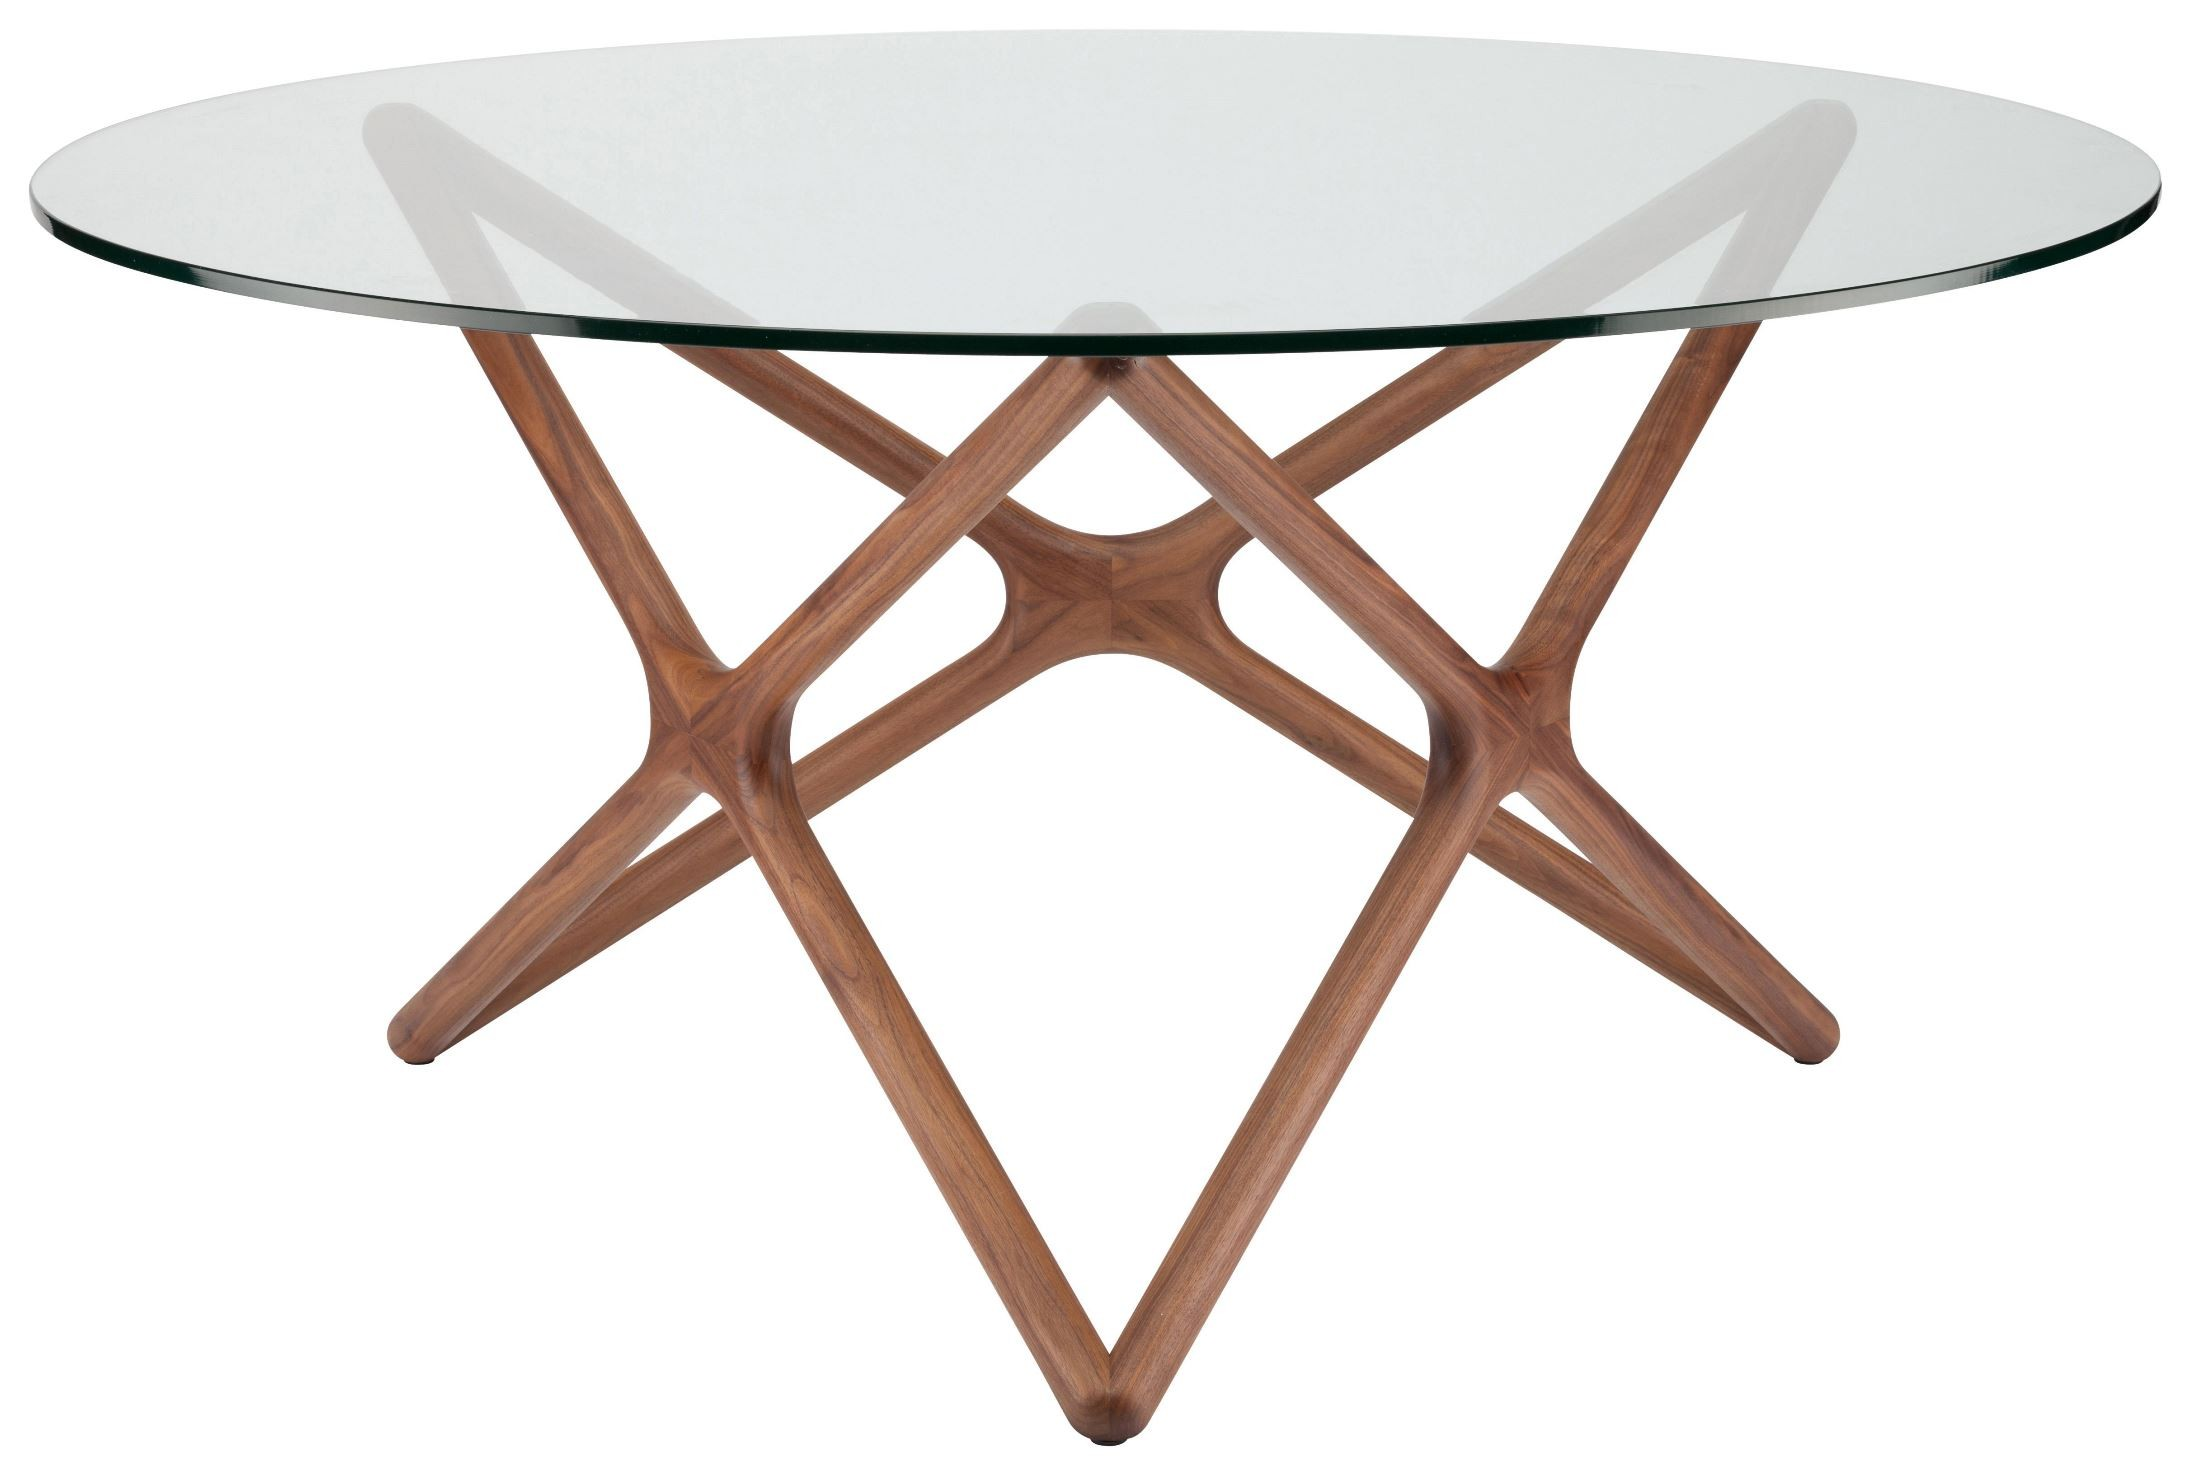 Star Furniture Dining Table: Star Clear Glass Dining Table, HGEM707, Nuevo